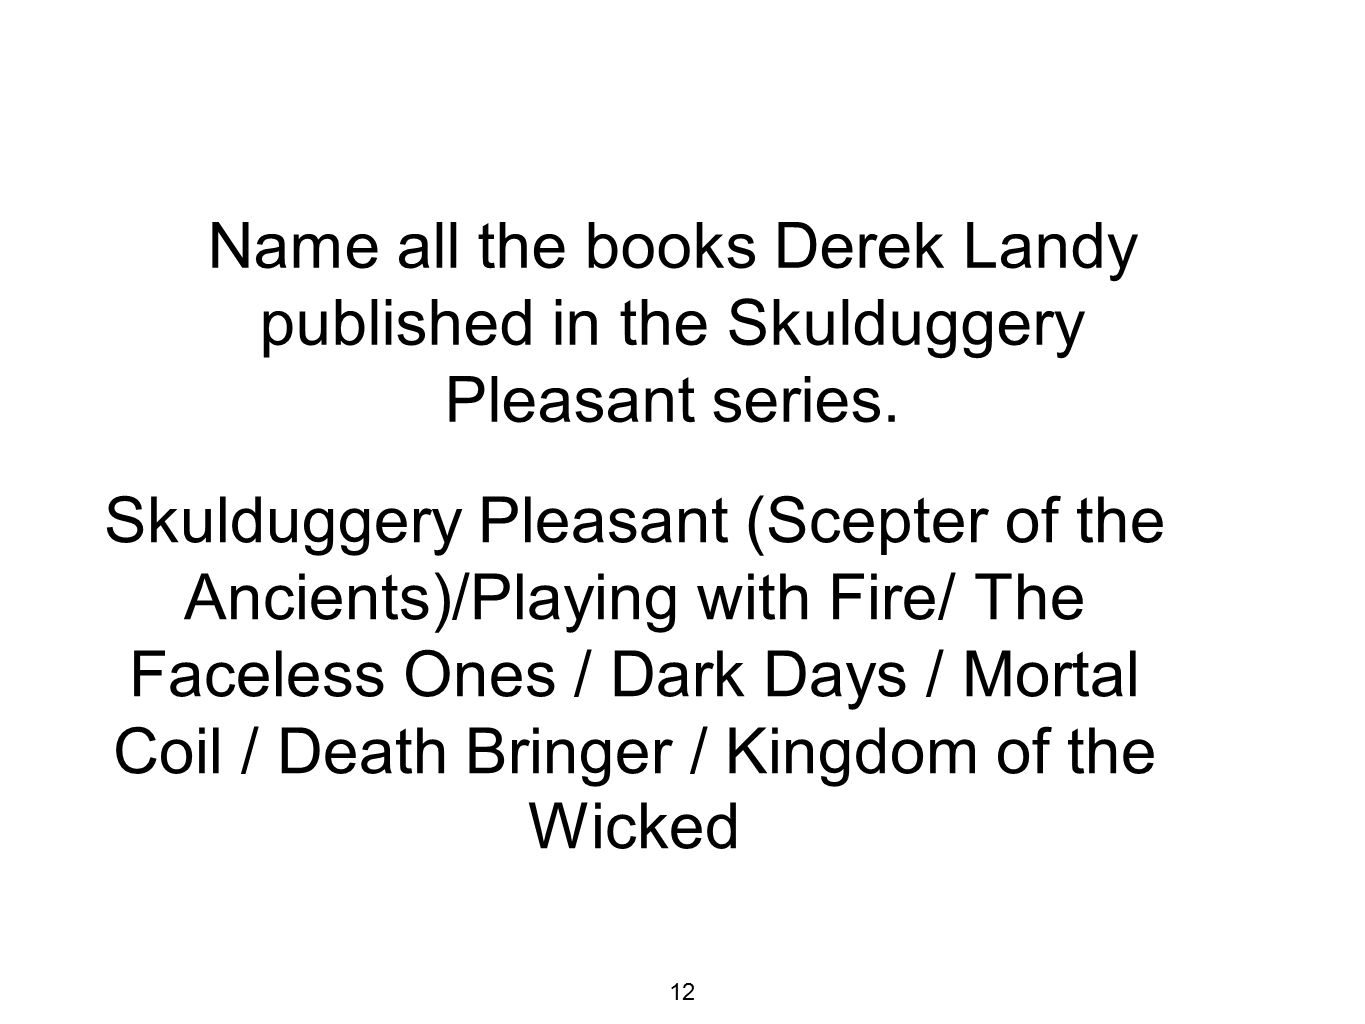 Name all the books Derek Landy published in the Skulduggery Pleasant series.